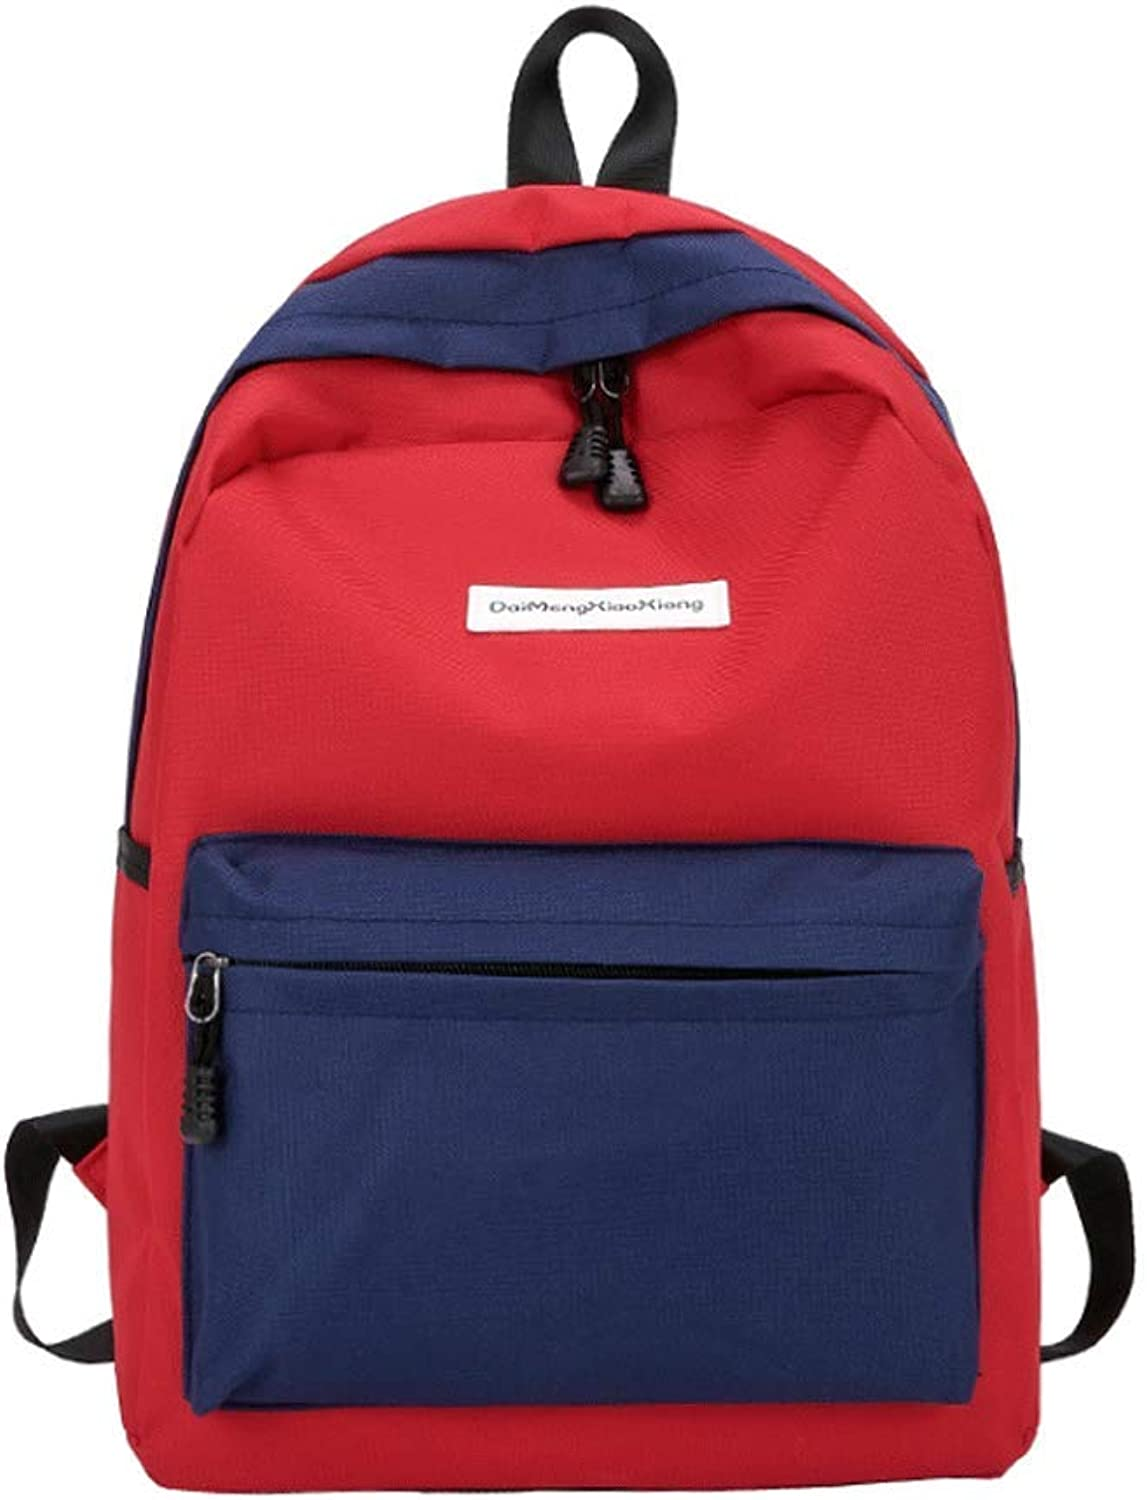 Schoolbag female color high school student canvas backpack super fire backpack